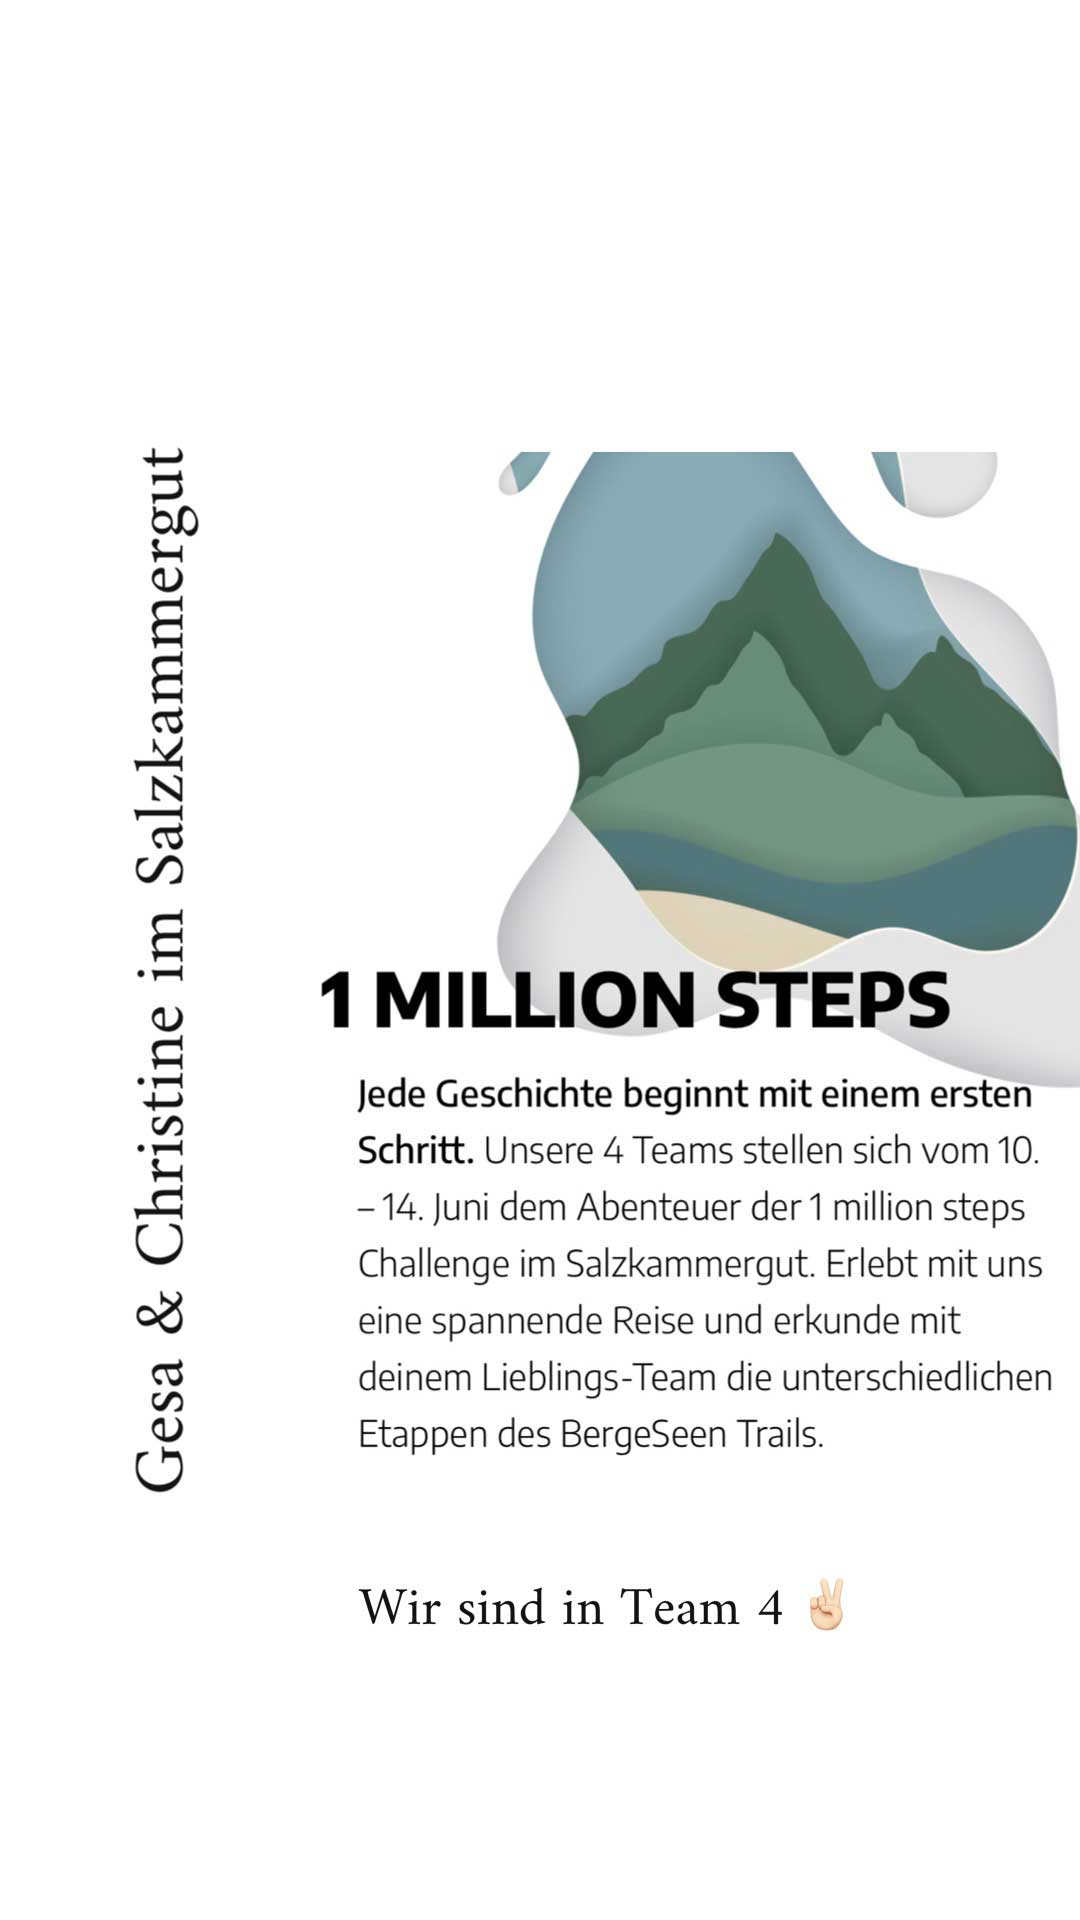 salzkammergut-1-million-steps-munichmountaingirls